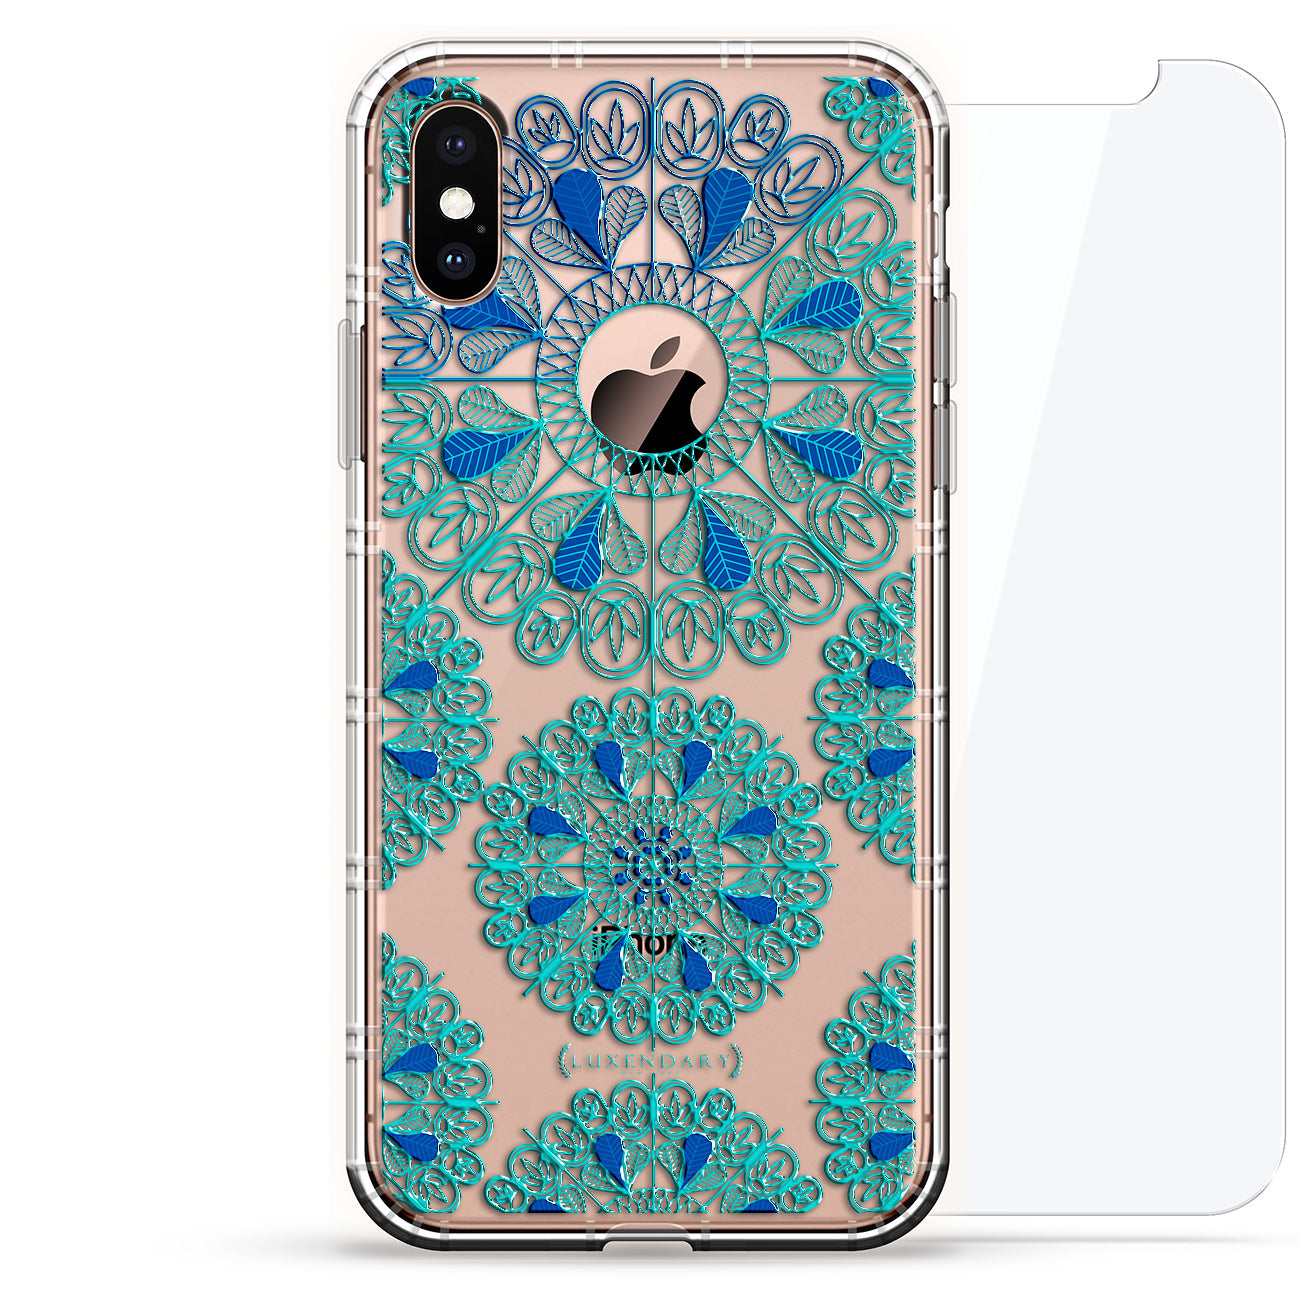 Turquoise & Blue Mandalas With Apple Logo Circle